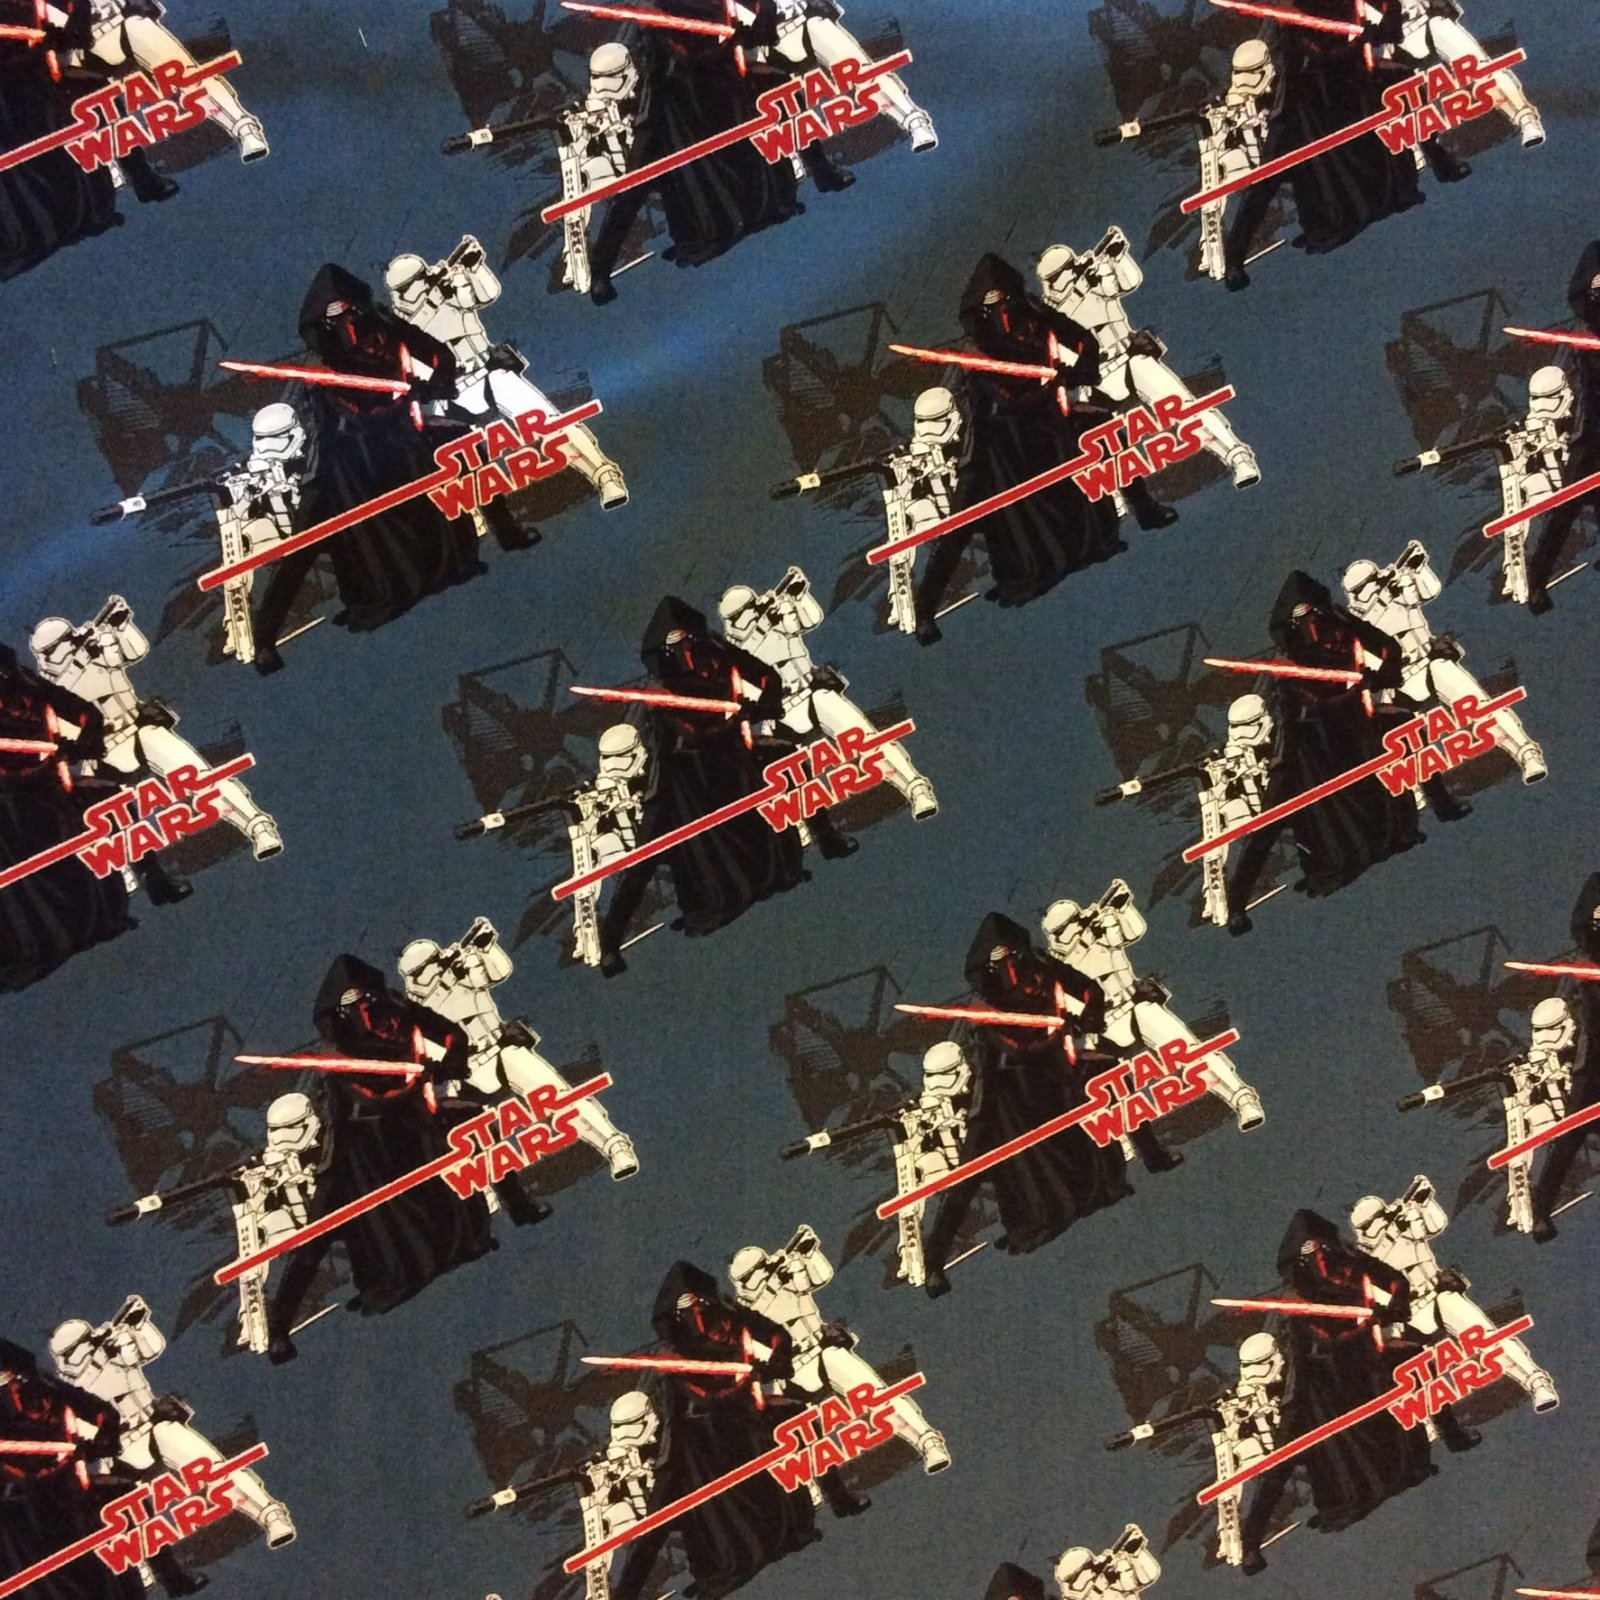 Star Wars The Force Awakens X-wing Empire Clone Rebels Lucas Films Movie Cotton Quilt Fabric FT84